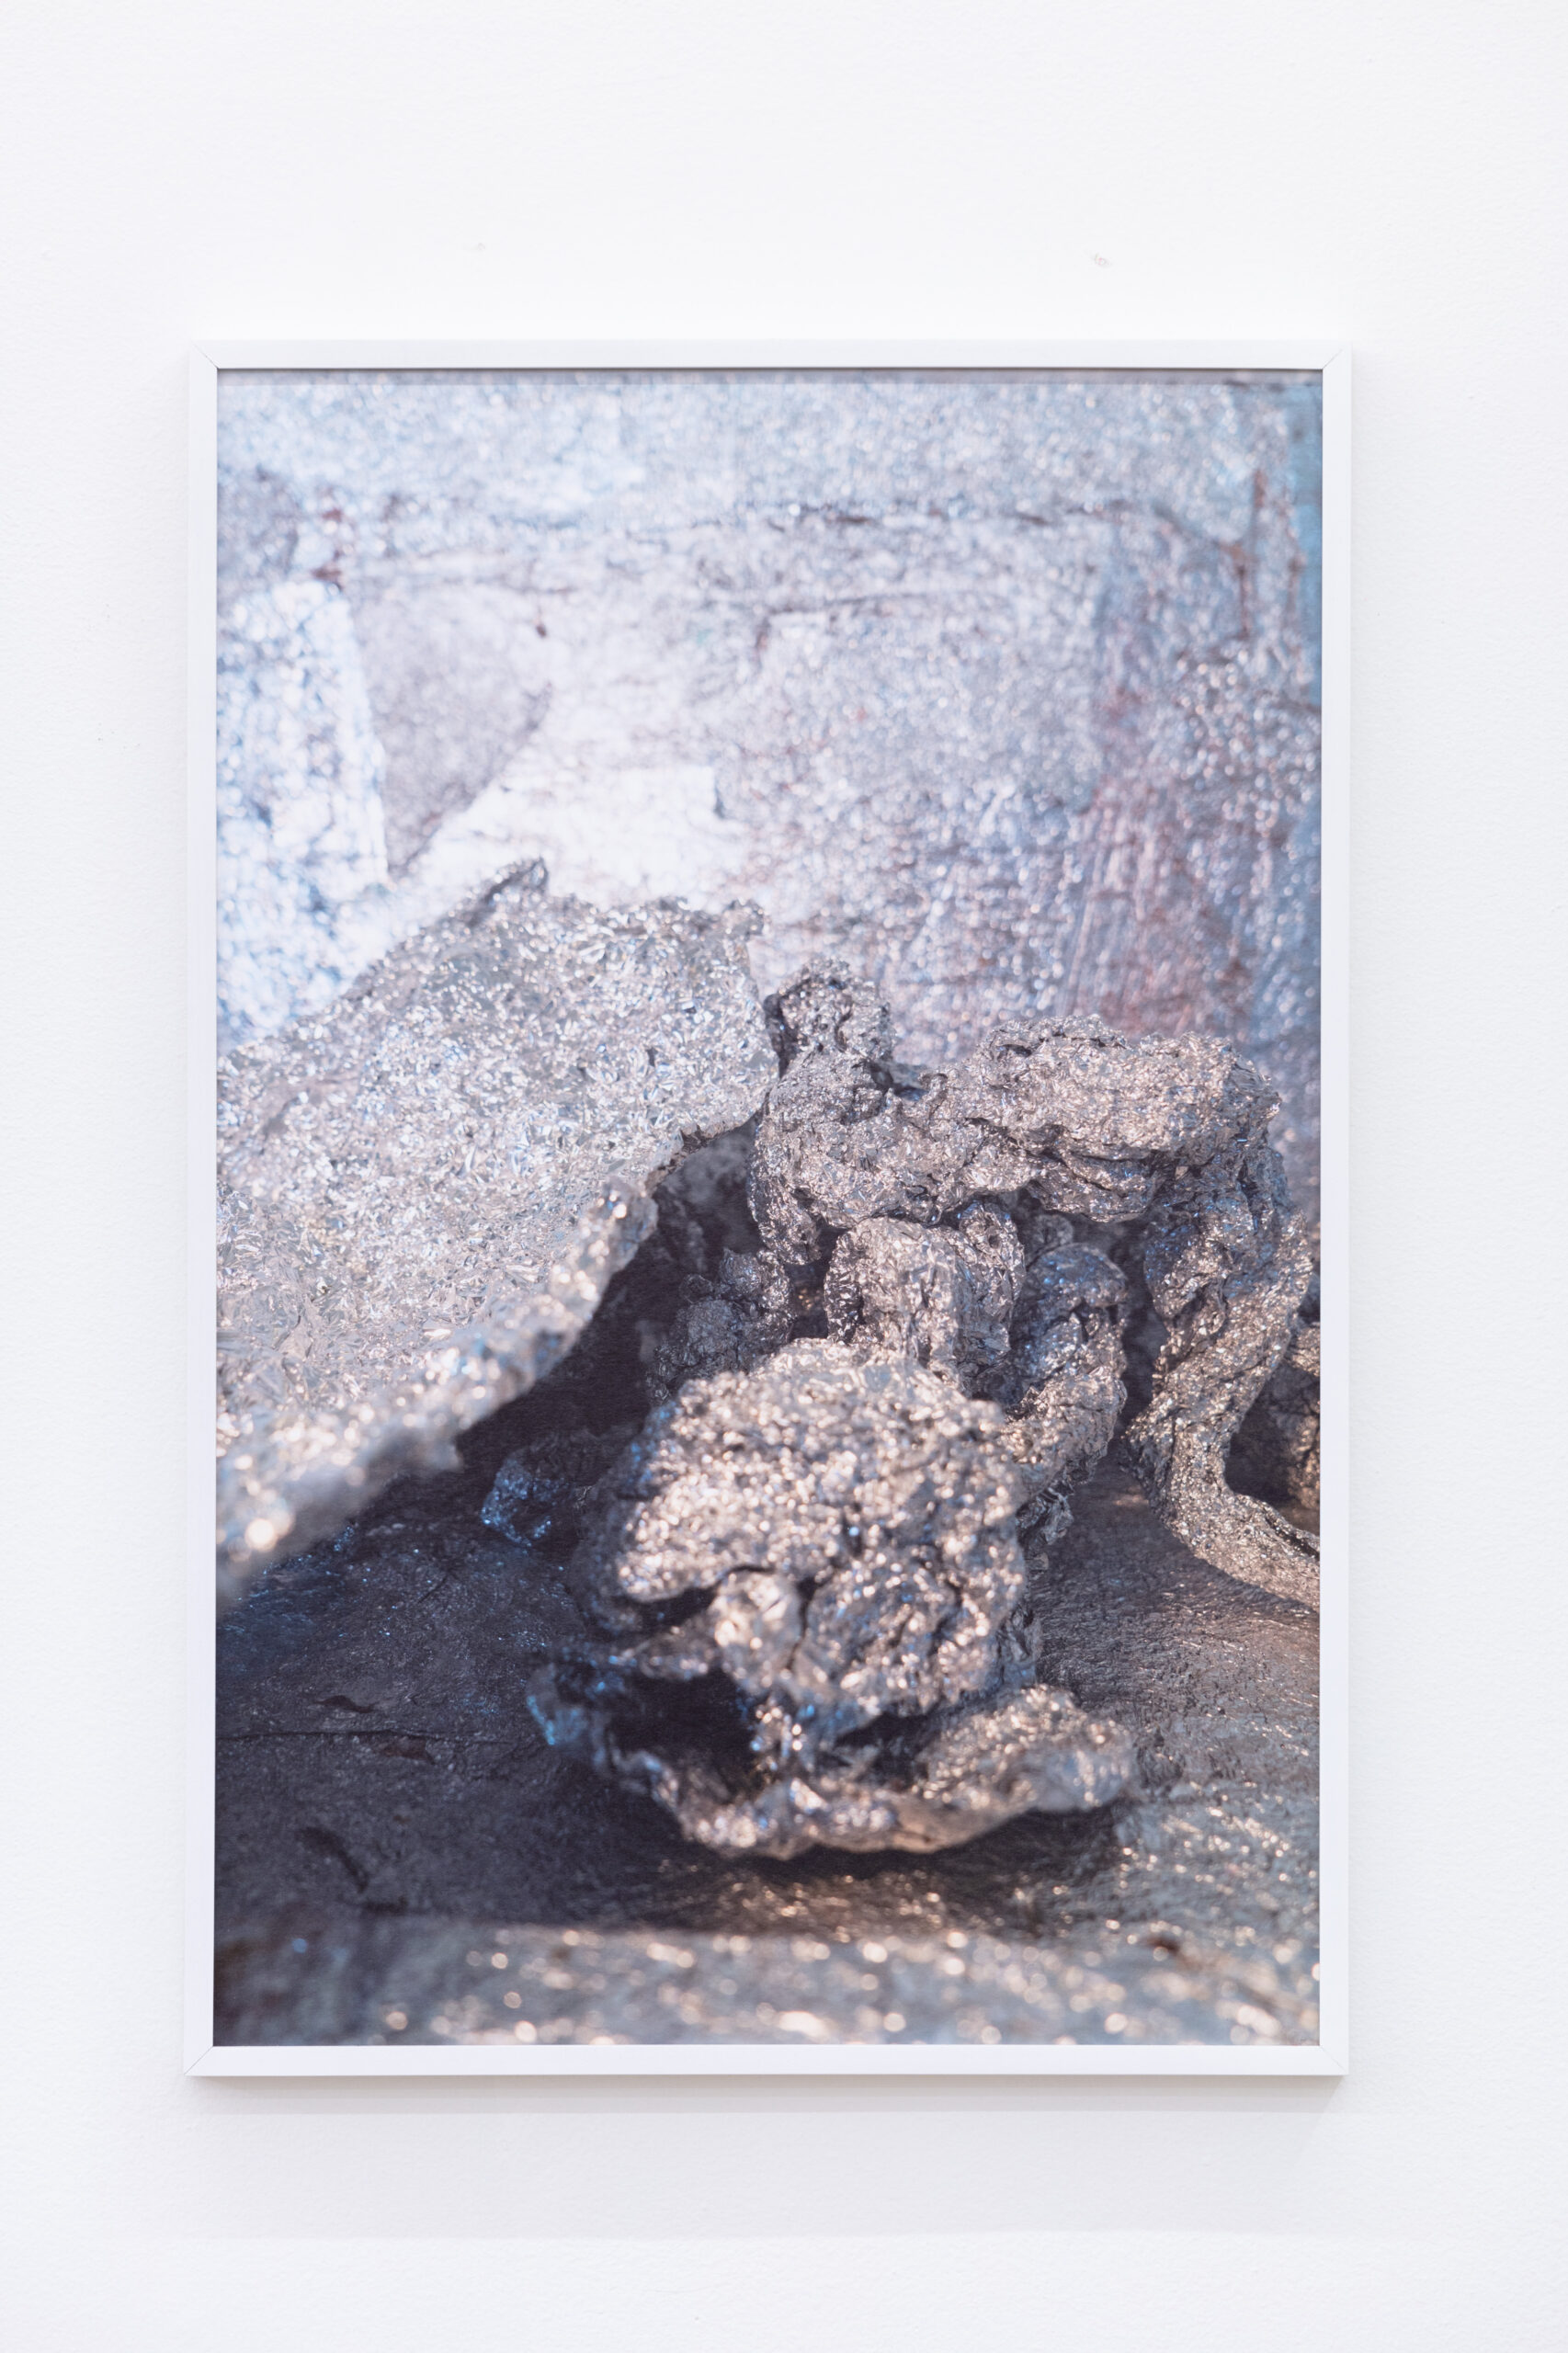 Anna Betbeze, Stage (Collapsed), 2021, framed archival print, 30.5 x 20.5 in. Ed. 2